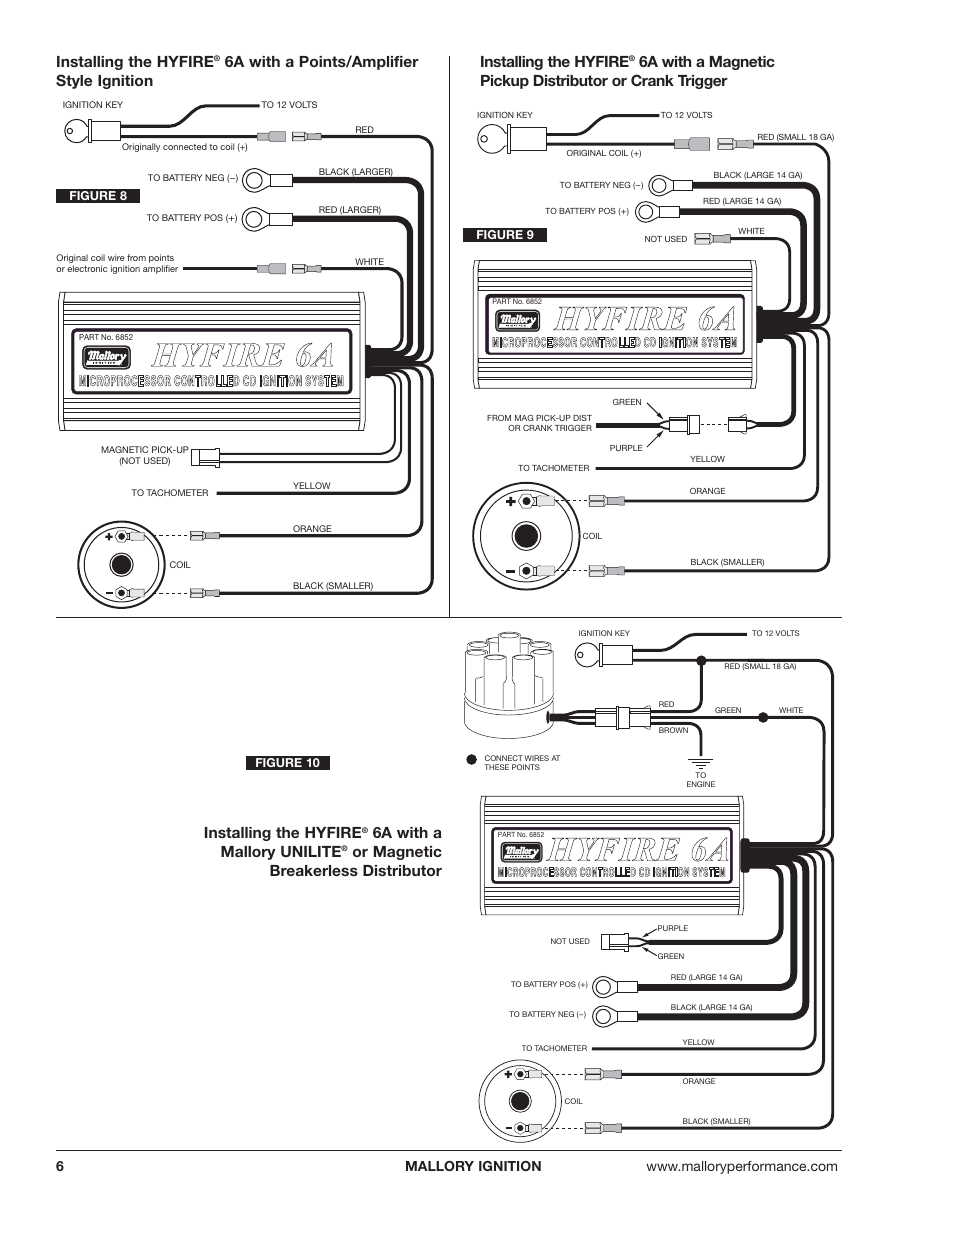 mallory 6al ignition wiring diagram